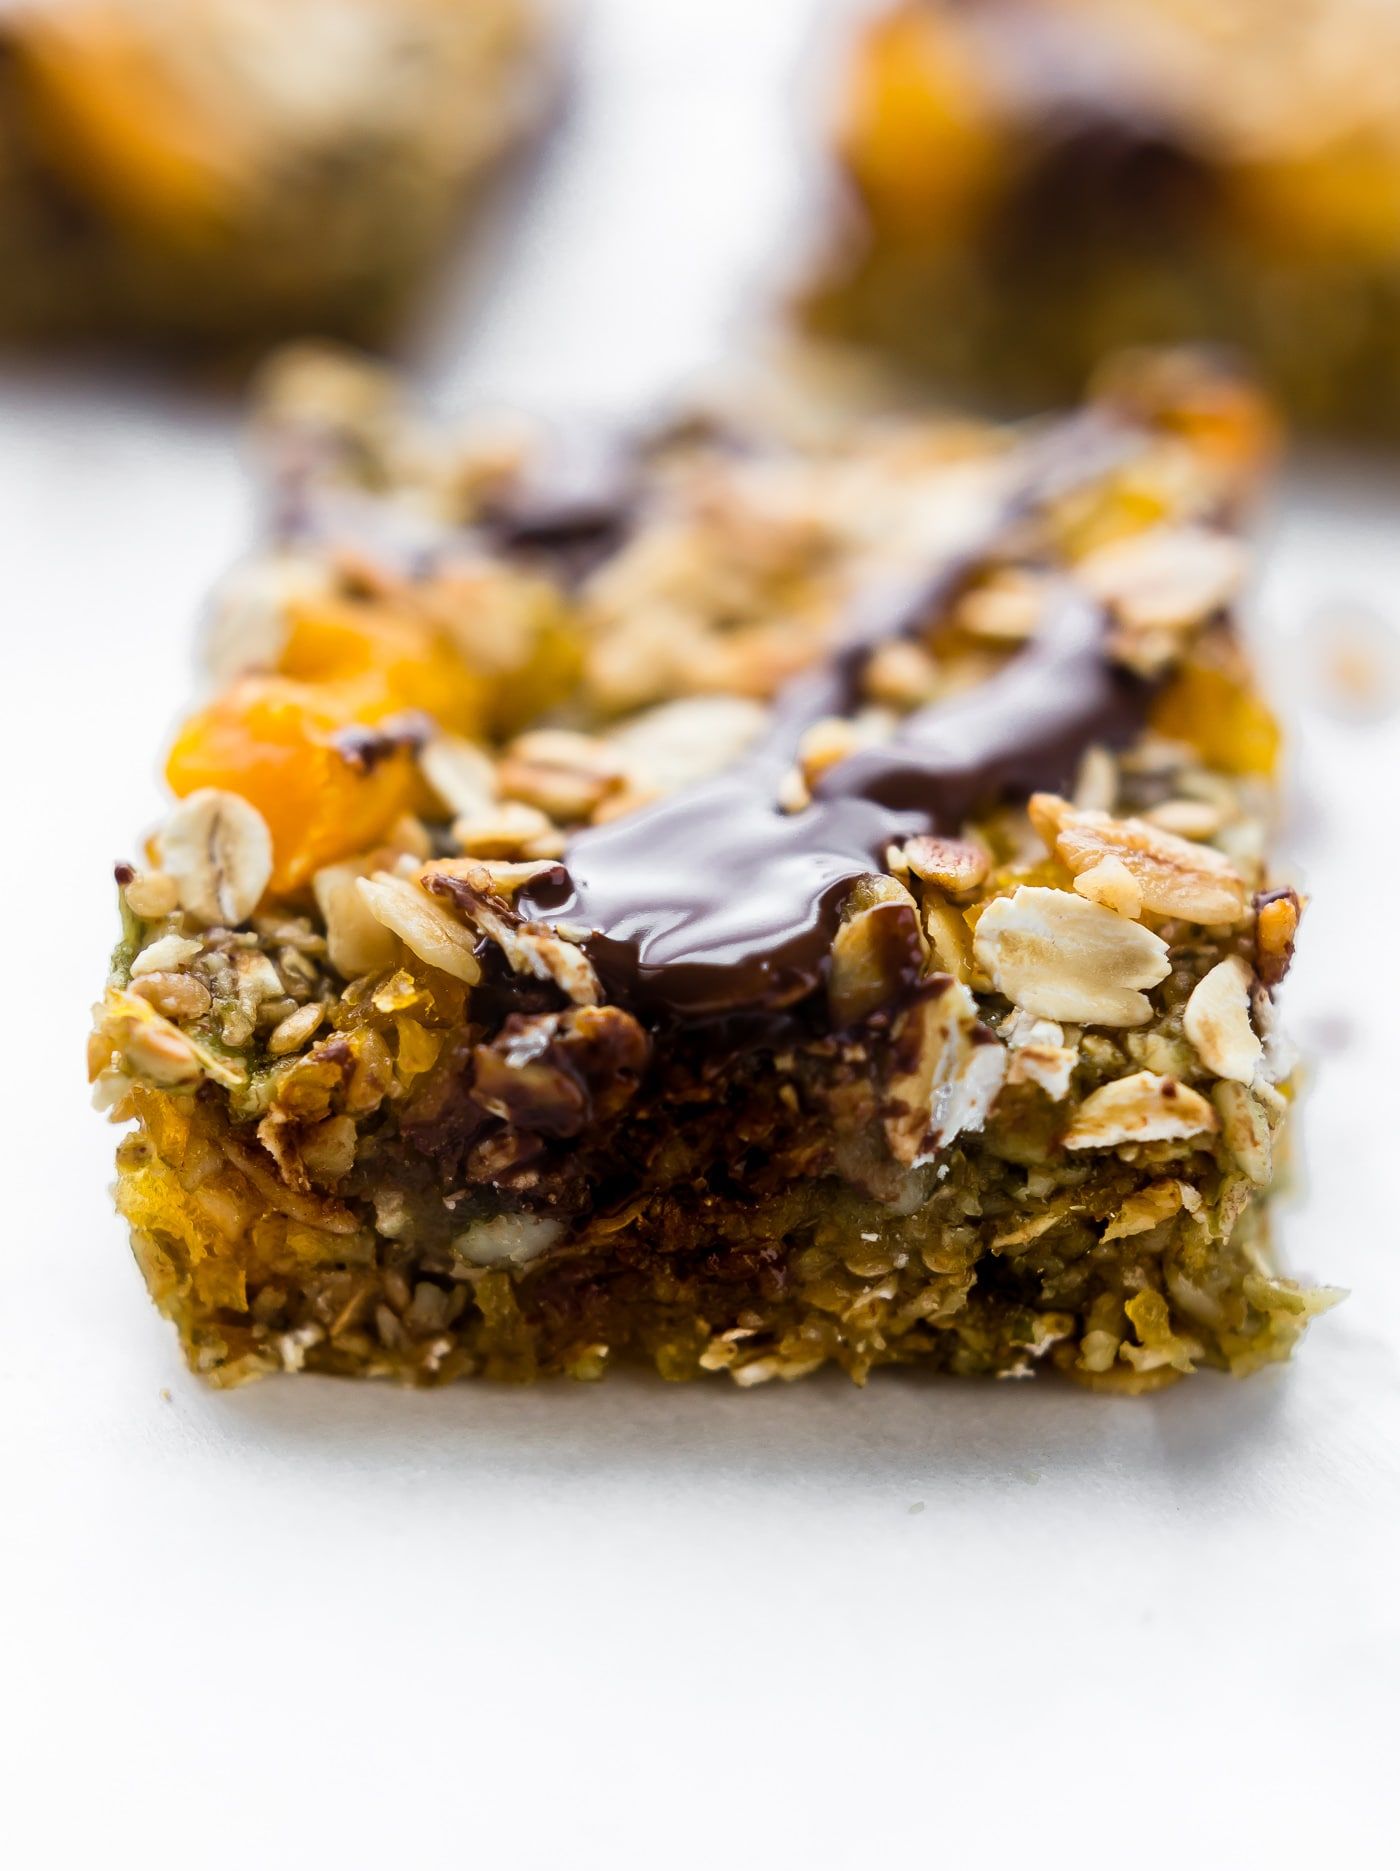 No Bake Apricot Oat Protein Bars easy to make, wholesome, and nut free! Made with dried apricots, gluten free oats, protein, & seeds! Sweet, chewy, vegan!